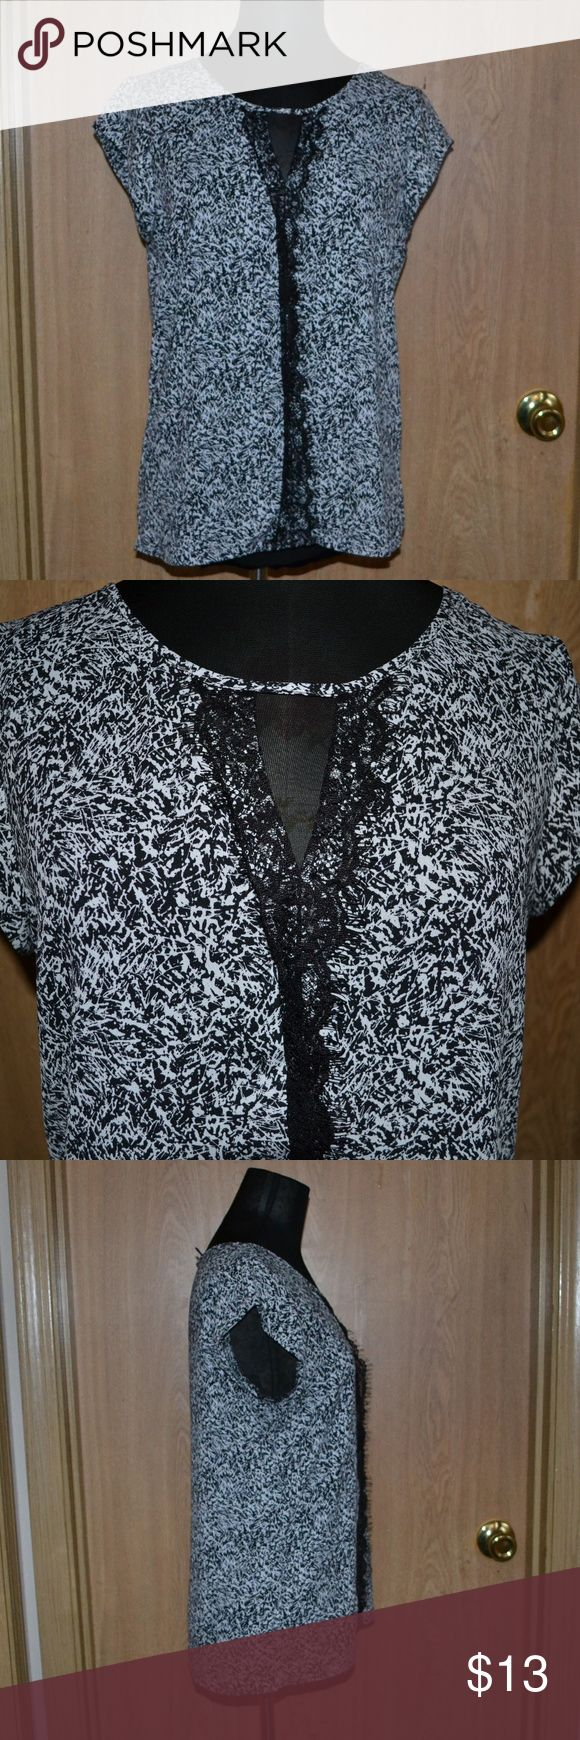 Express white & black lace short sleeved blouse THIS ITEM IS NOT INCLUDED IN THE 5 FOR 25 SALE! I ship Monday- Friday (sometimes Saturday!) Smoke free home.   A beautiful short sleeved black & white top with black slace down the middle size small 100% polyester. in excellent condition perfect for work. Express Tops Tees - Short Sleeve